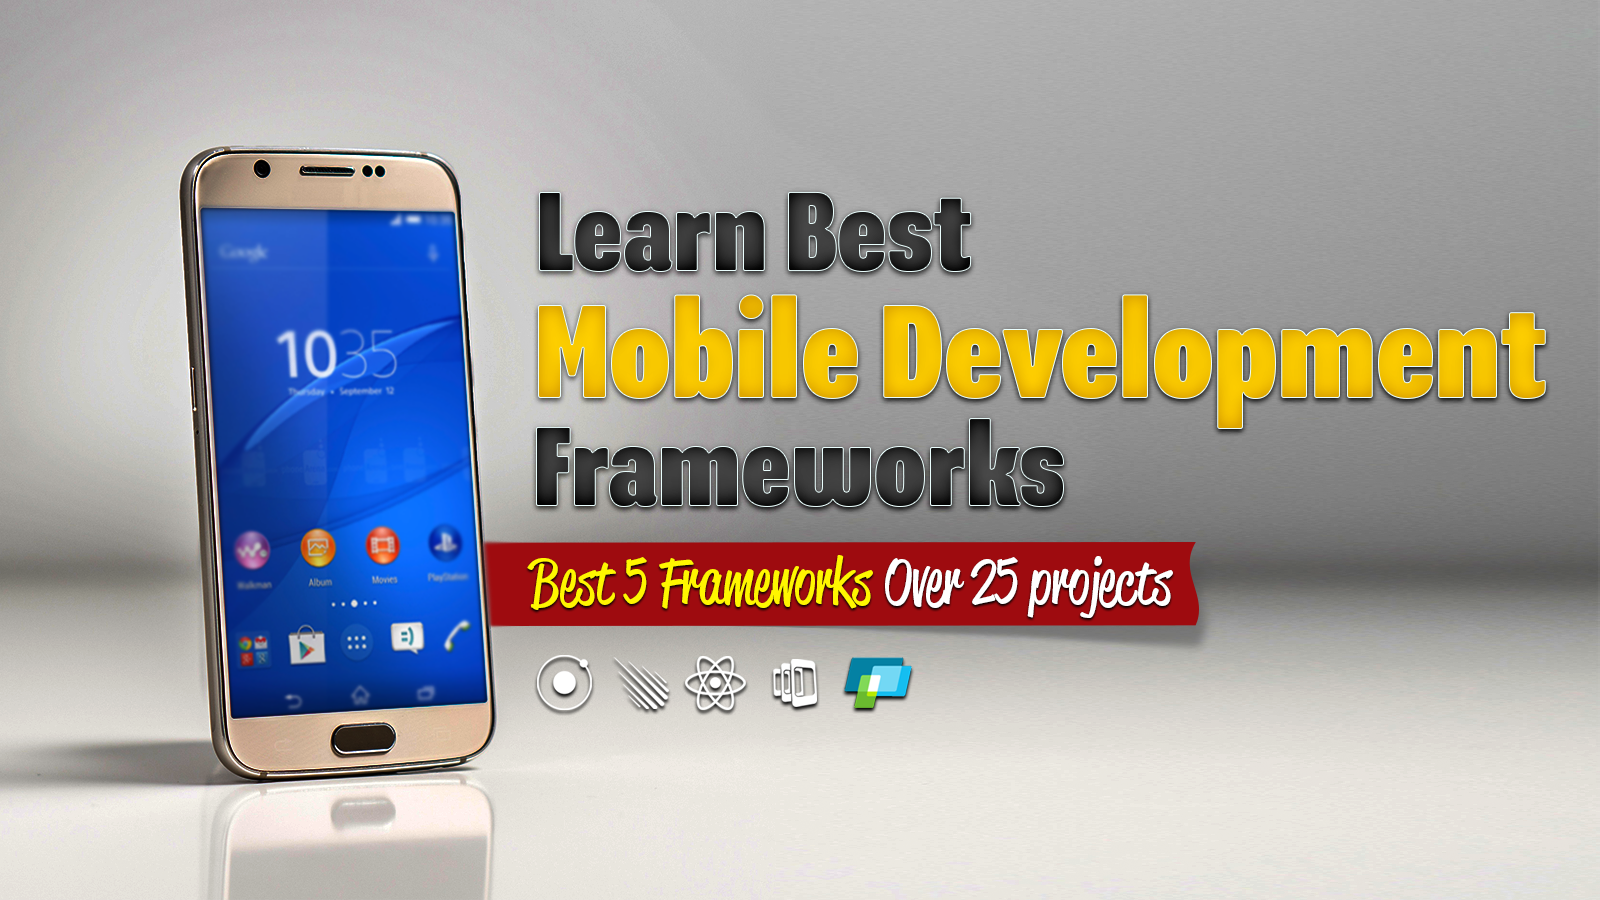 Become a Master in Mobile Development with 5 Best Frameworks